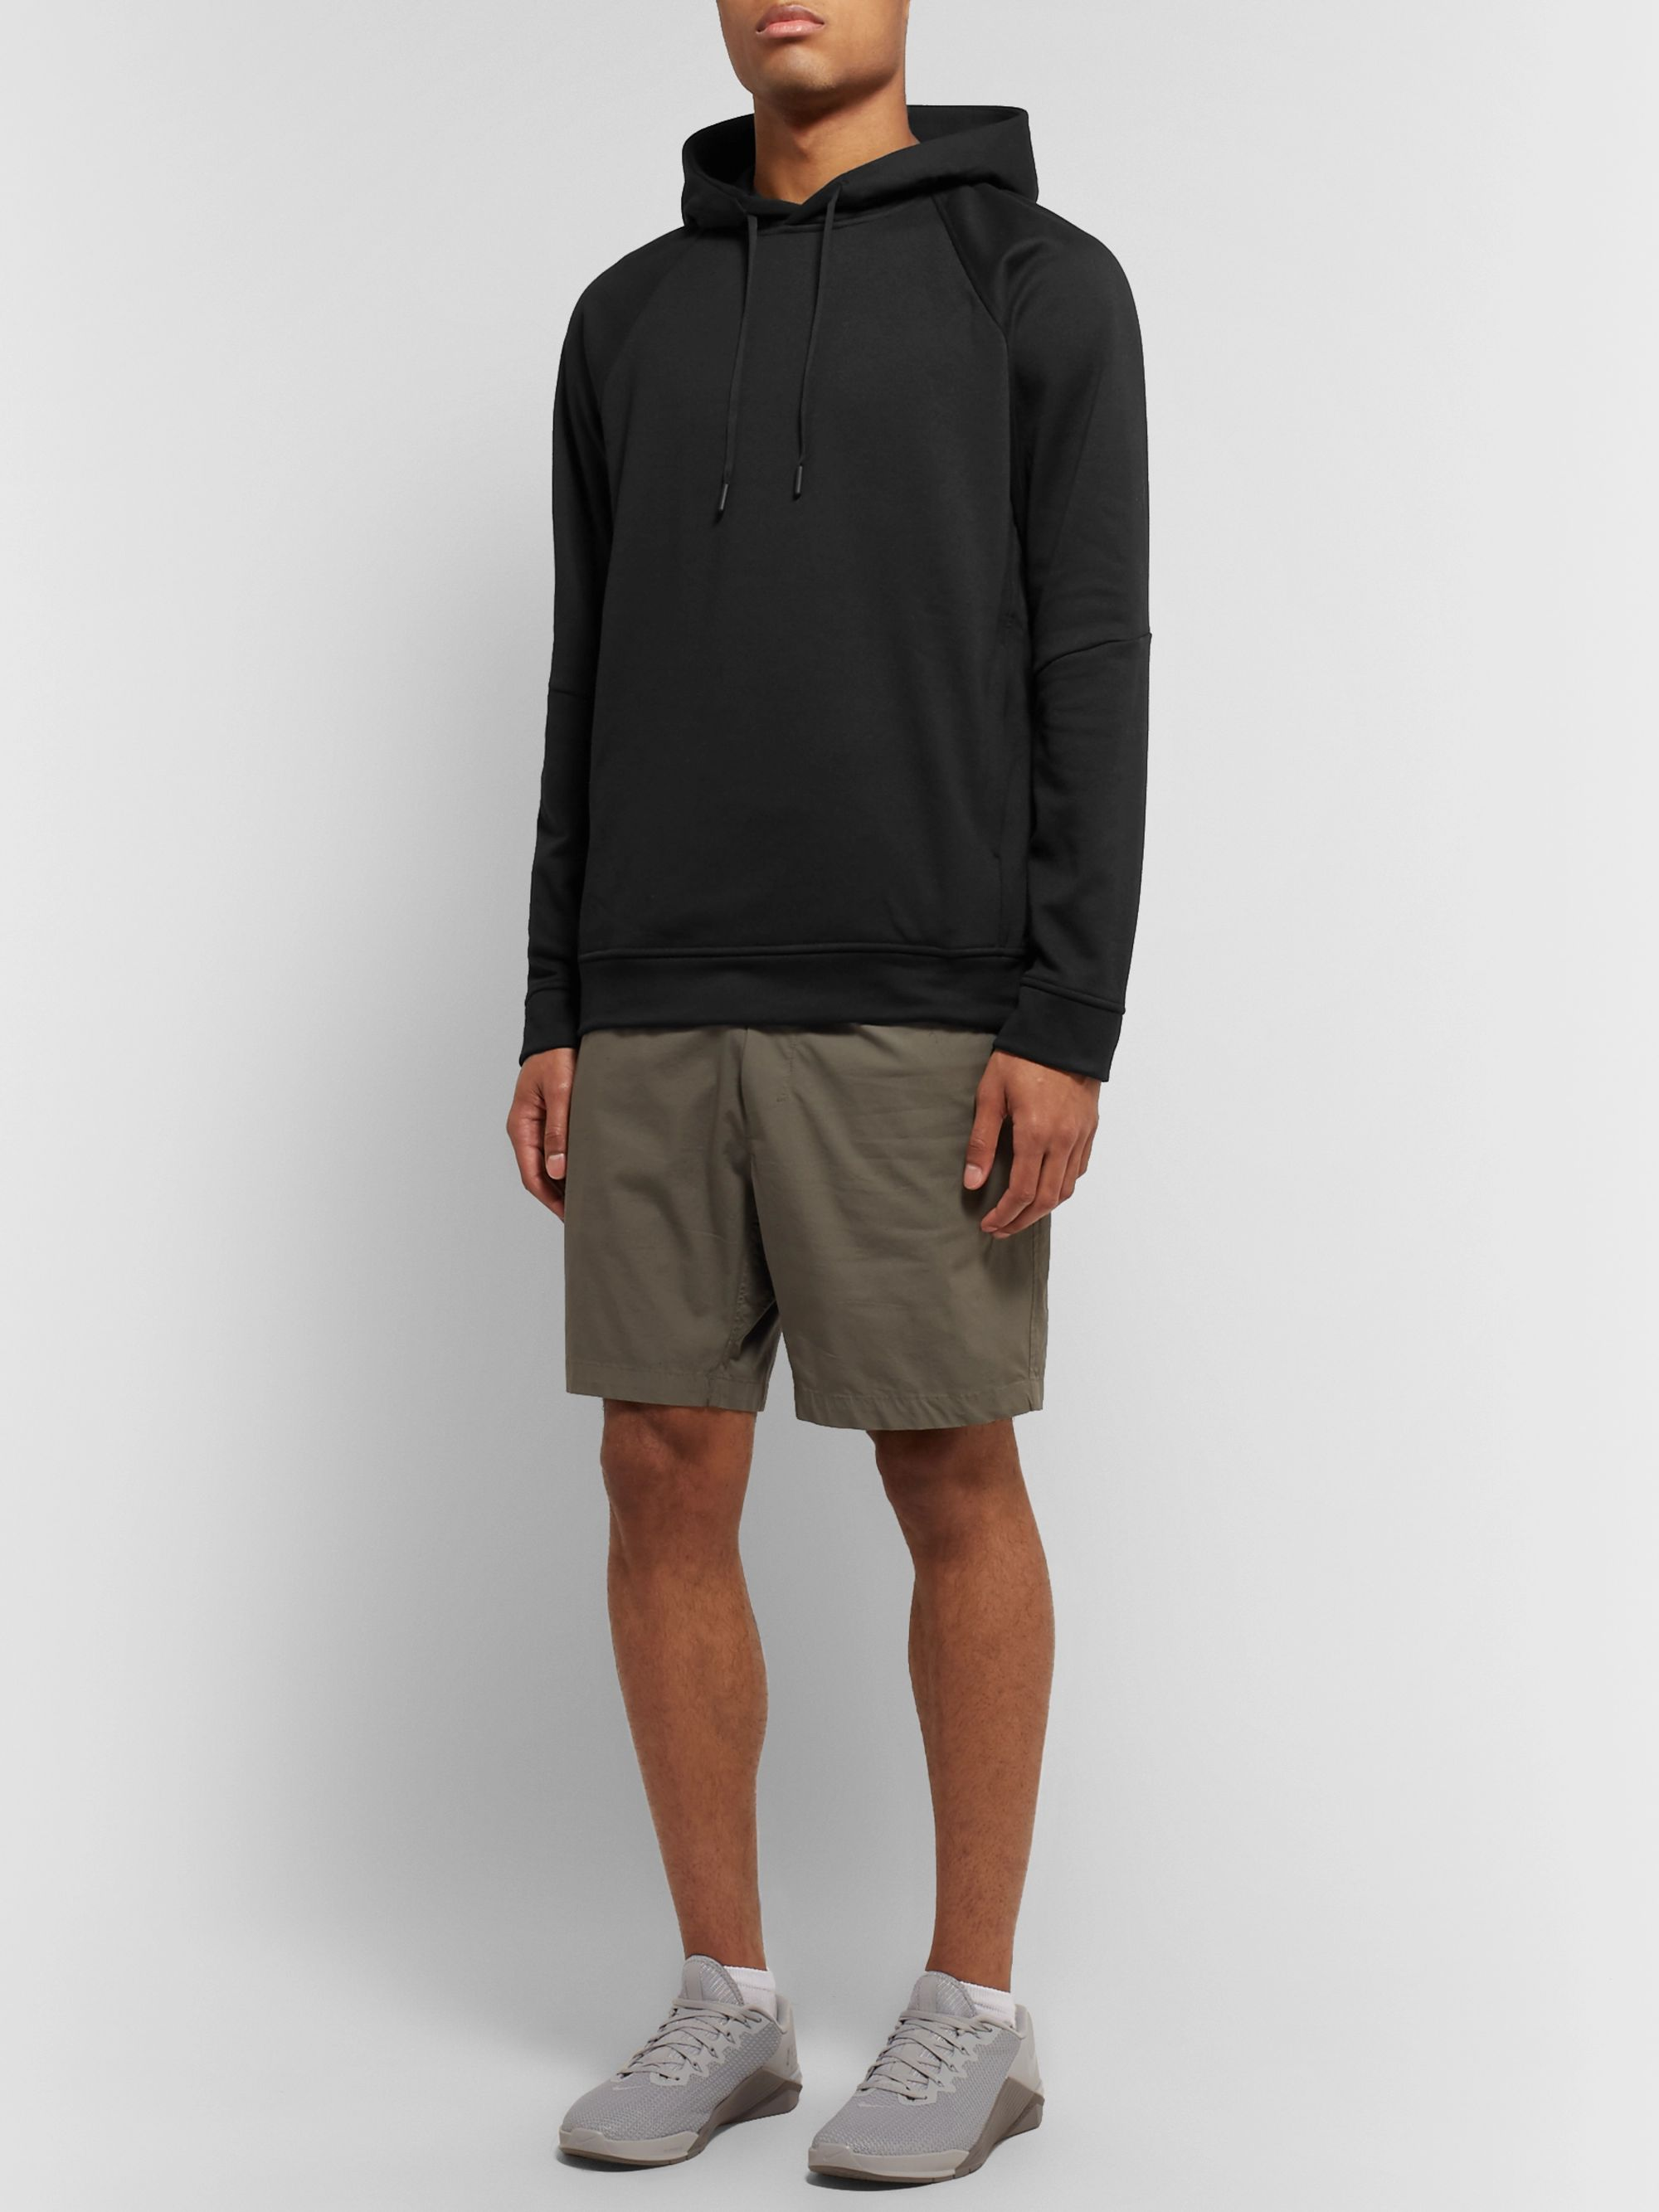 Lululemon City Sweat Thermo Tech Fleece Hoodie